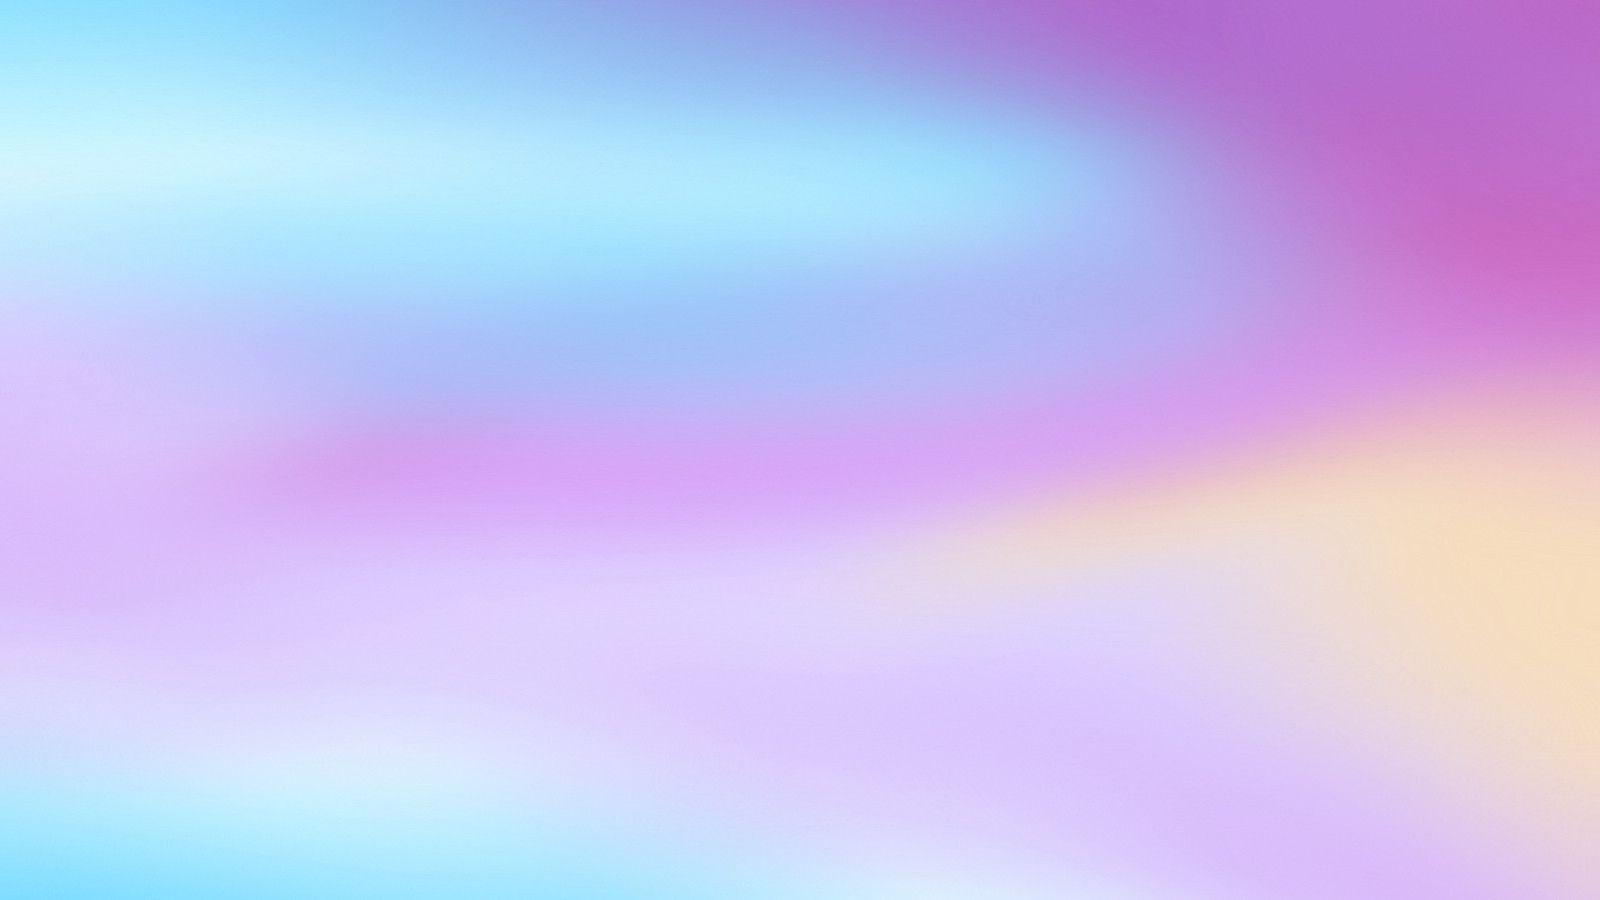 iphone pastel wallpaper hd 112_